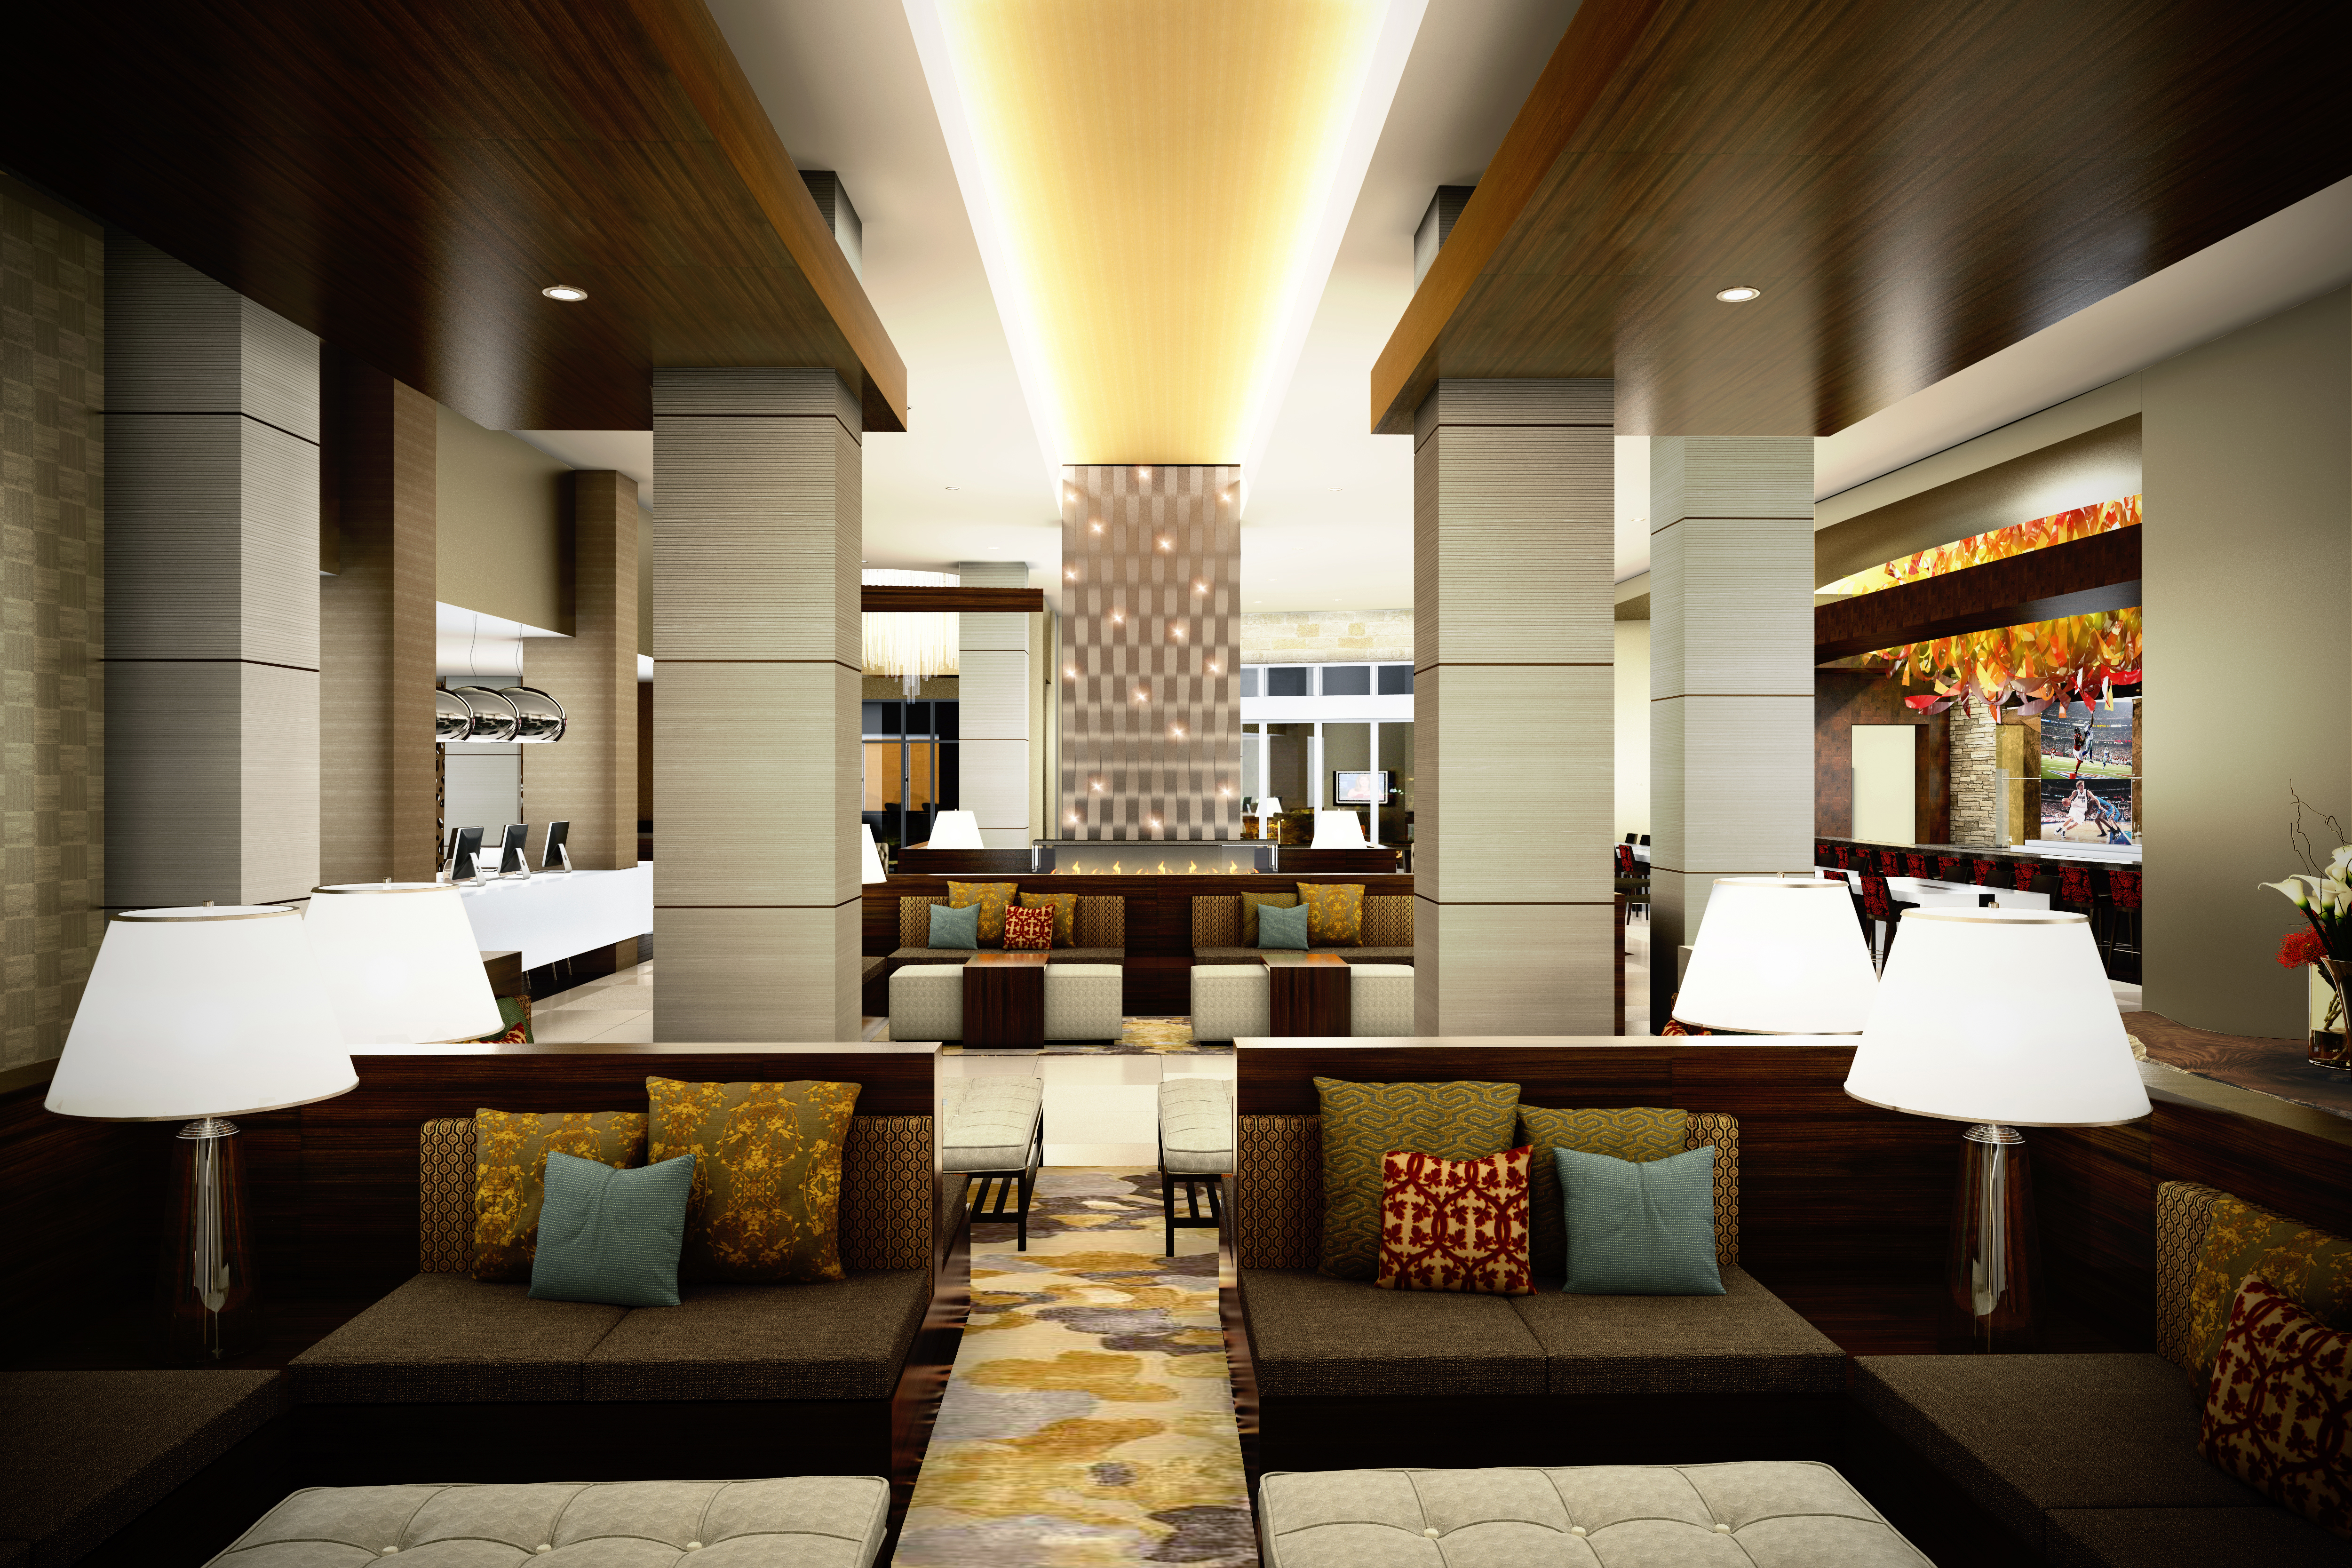 Hilton Hotels Resorts Expands Deep Texas Roots 299 Room Upscale Contemporary Hotel Opens In Master Planned North Dallas Community Business Wire